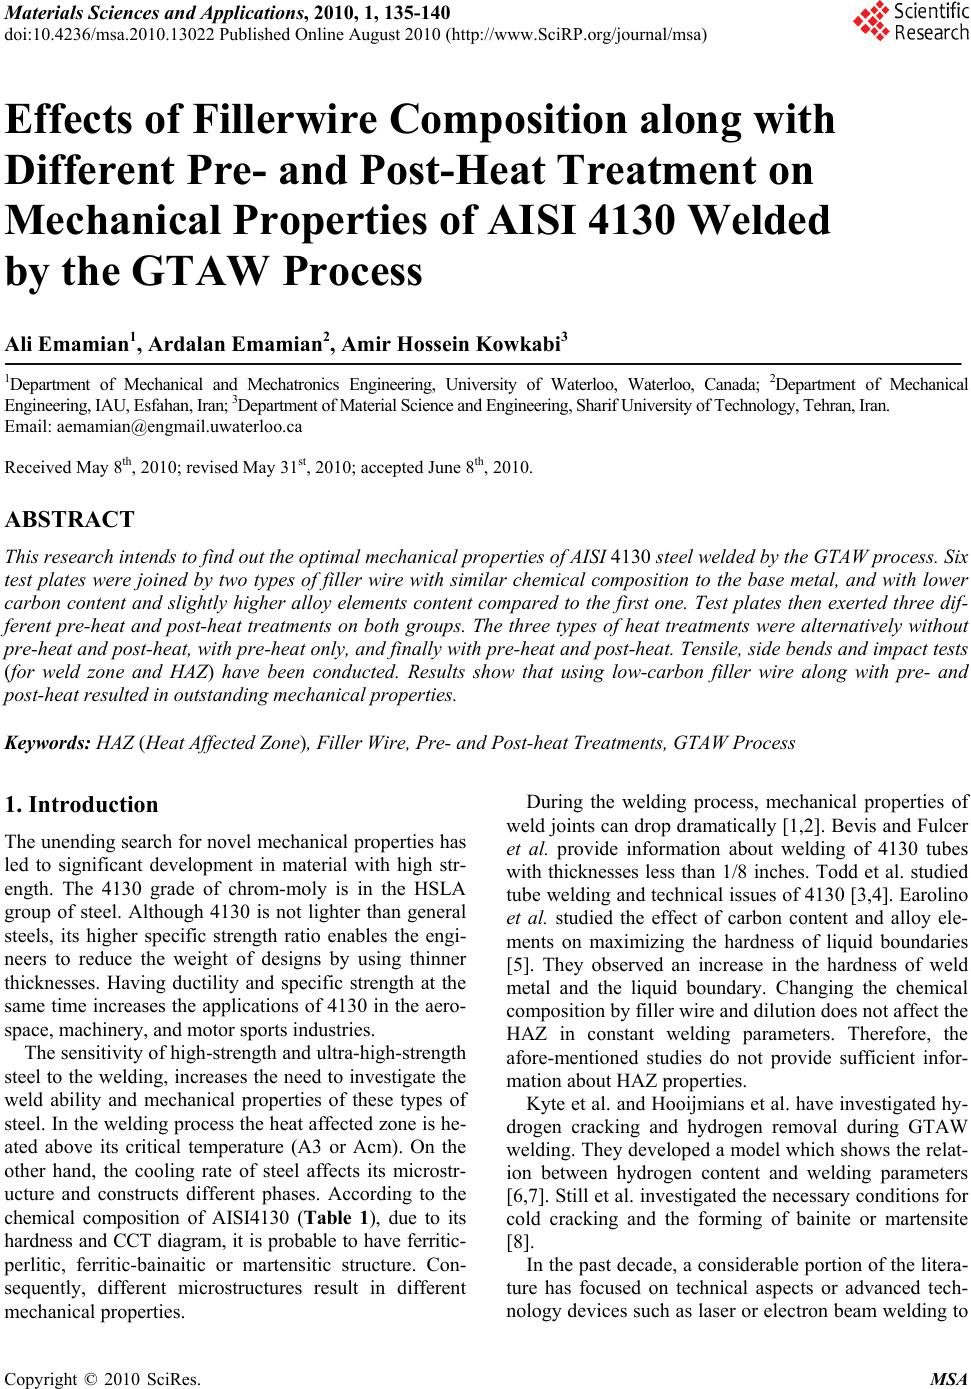 Effects Of Fillerwire Composition Along With Different Pre And Post Pwht Wiring Diagram Heat Treatment On Mechanical Properties Aisi 4130 Welded By The Gtaw Process